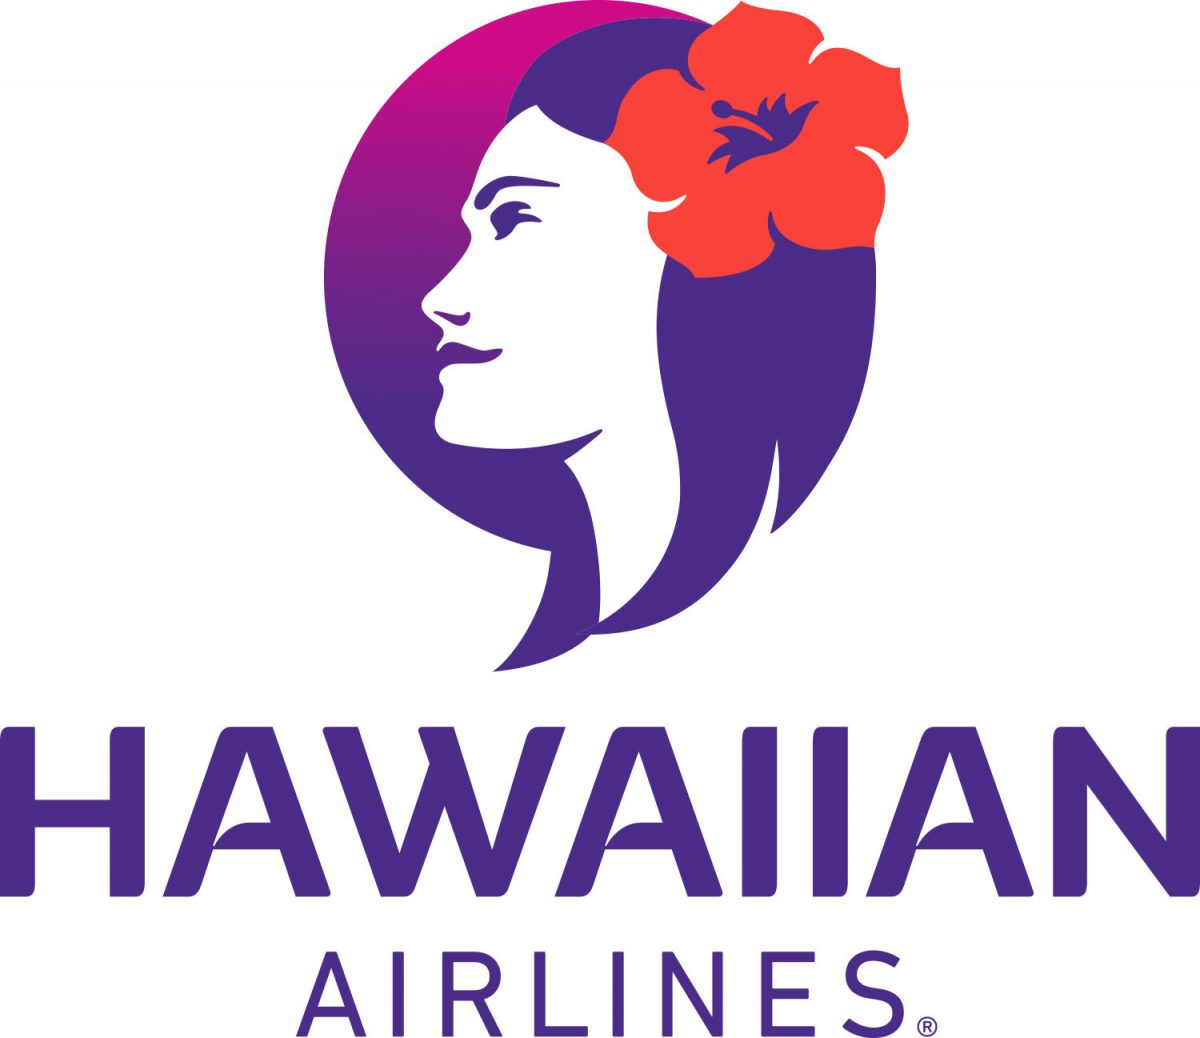 Hawaiian Airlines Maintains On-Time Performance Record for 17th Consecutive Year